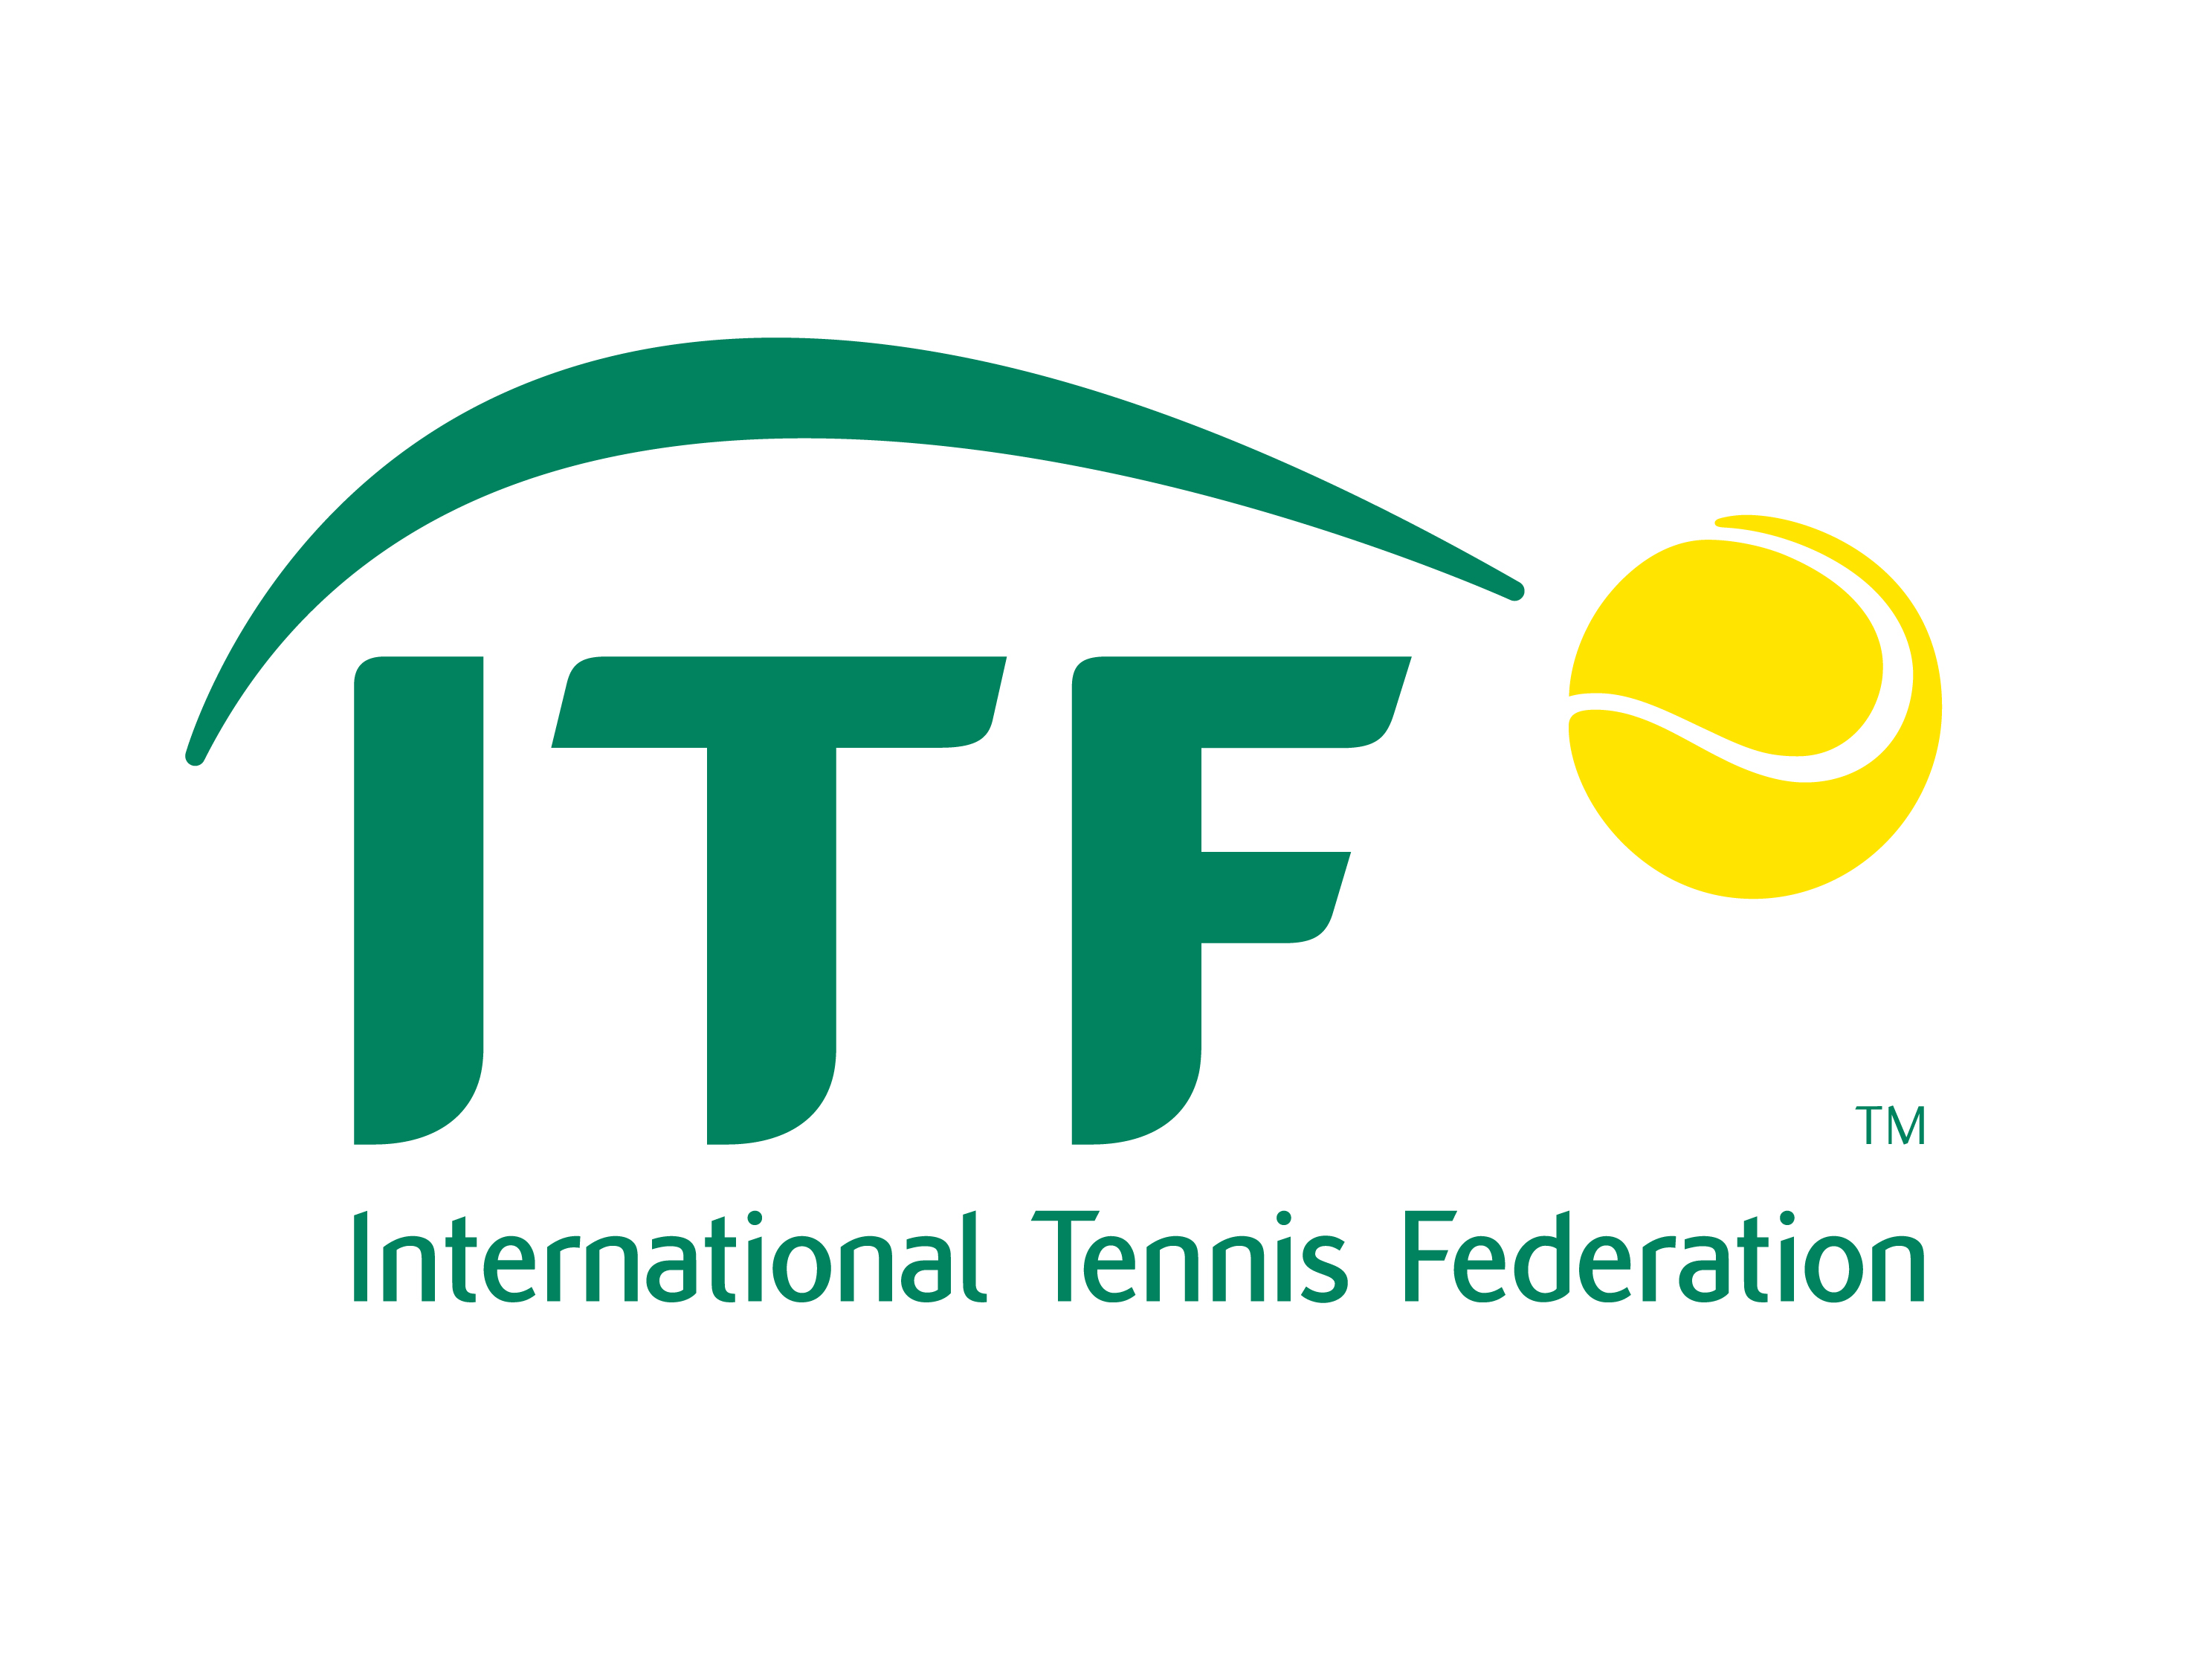 logo for International Tennis Federation